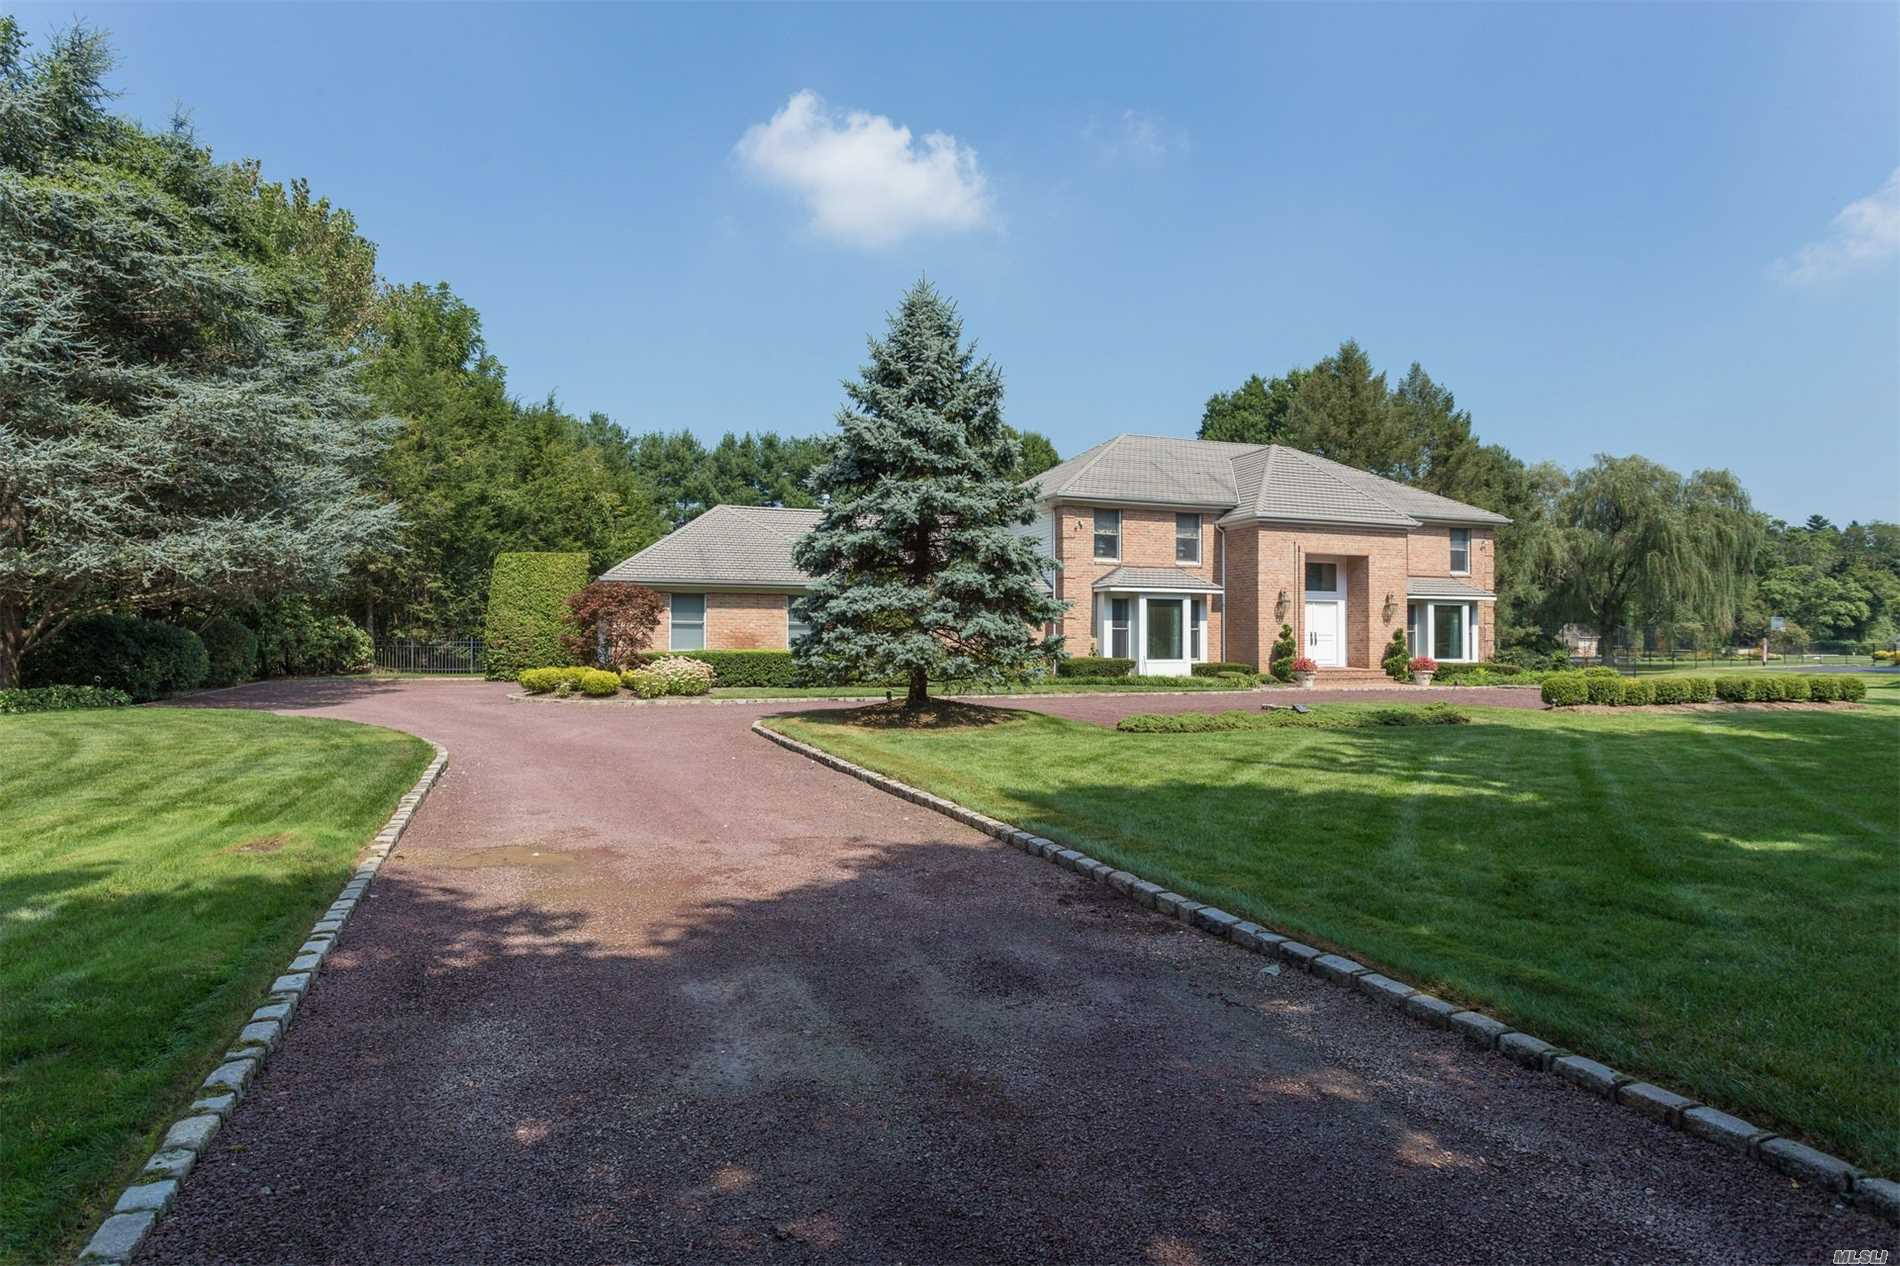 Gracious & Pristine Colonial Set On Lush, Flat 2 Acres In Country Club/Botanical Setting In Prestigious Old Brookville. Soaring 2 Story Entry Opens To Unobstructed Views Of Heated Gunite 20X44 Pool, Trex Deck, Patio And Manicured Grounds. Stately Formal Dining Room, Butler's Pantry, Eik, Formal Living Room, Den With Custom Onyx Fpl, 5 Bedrooms, 3.5 Baths, Four Season Sun Room, Low Taxes. Hoa Yearly Fee $1, 000 For Private Road